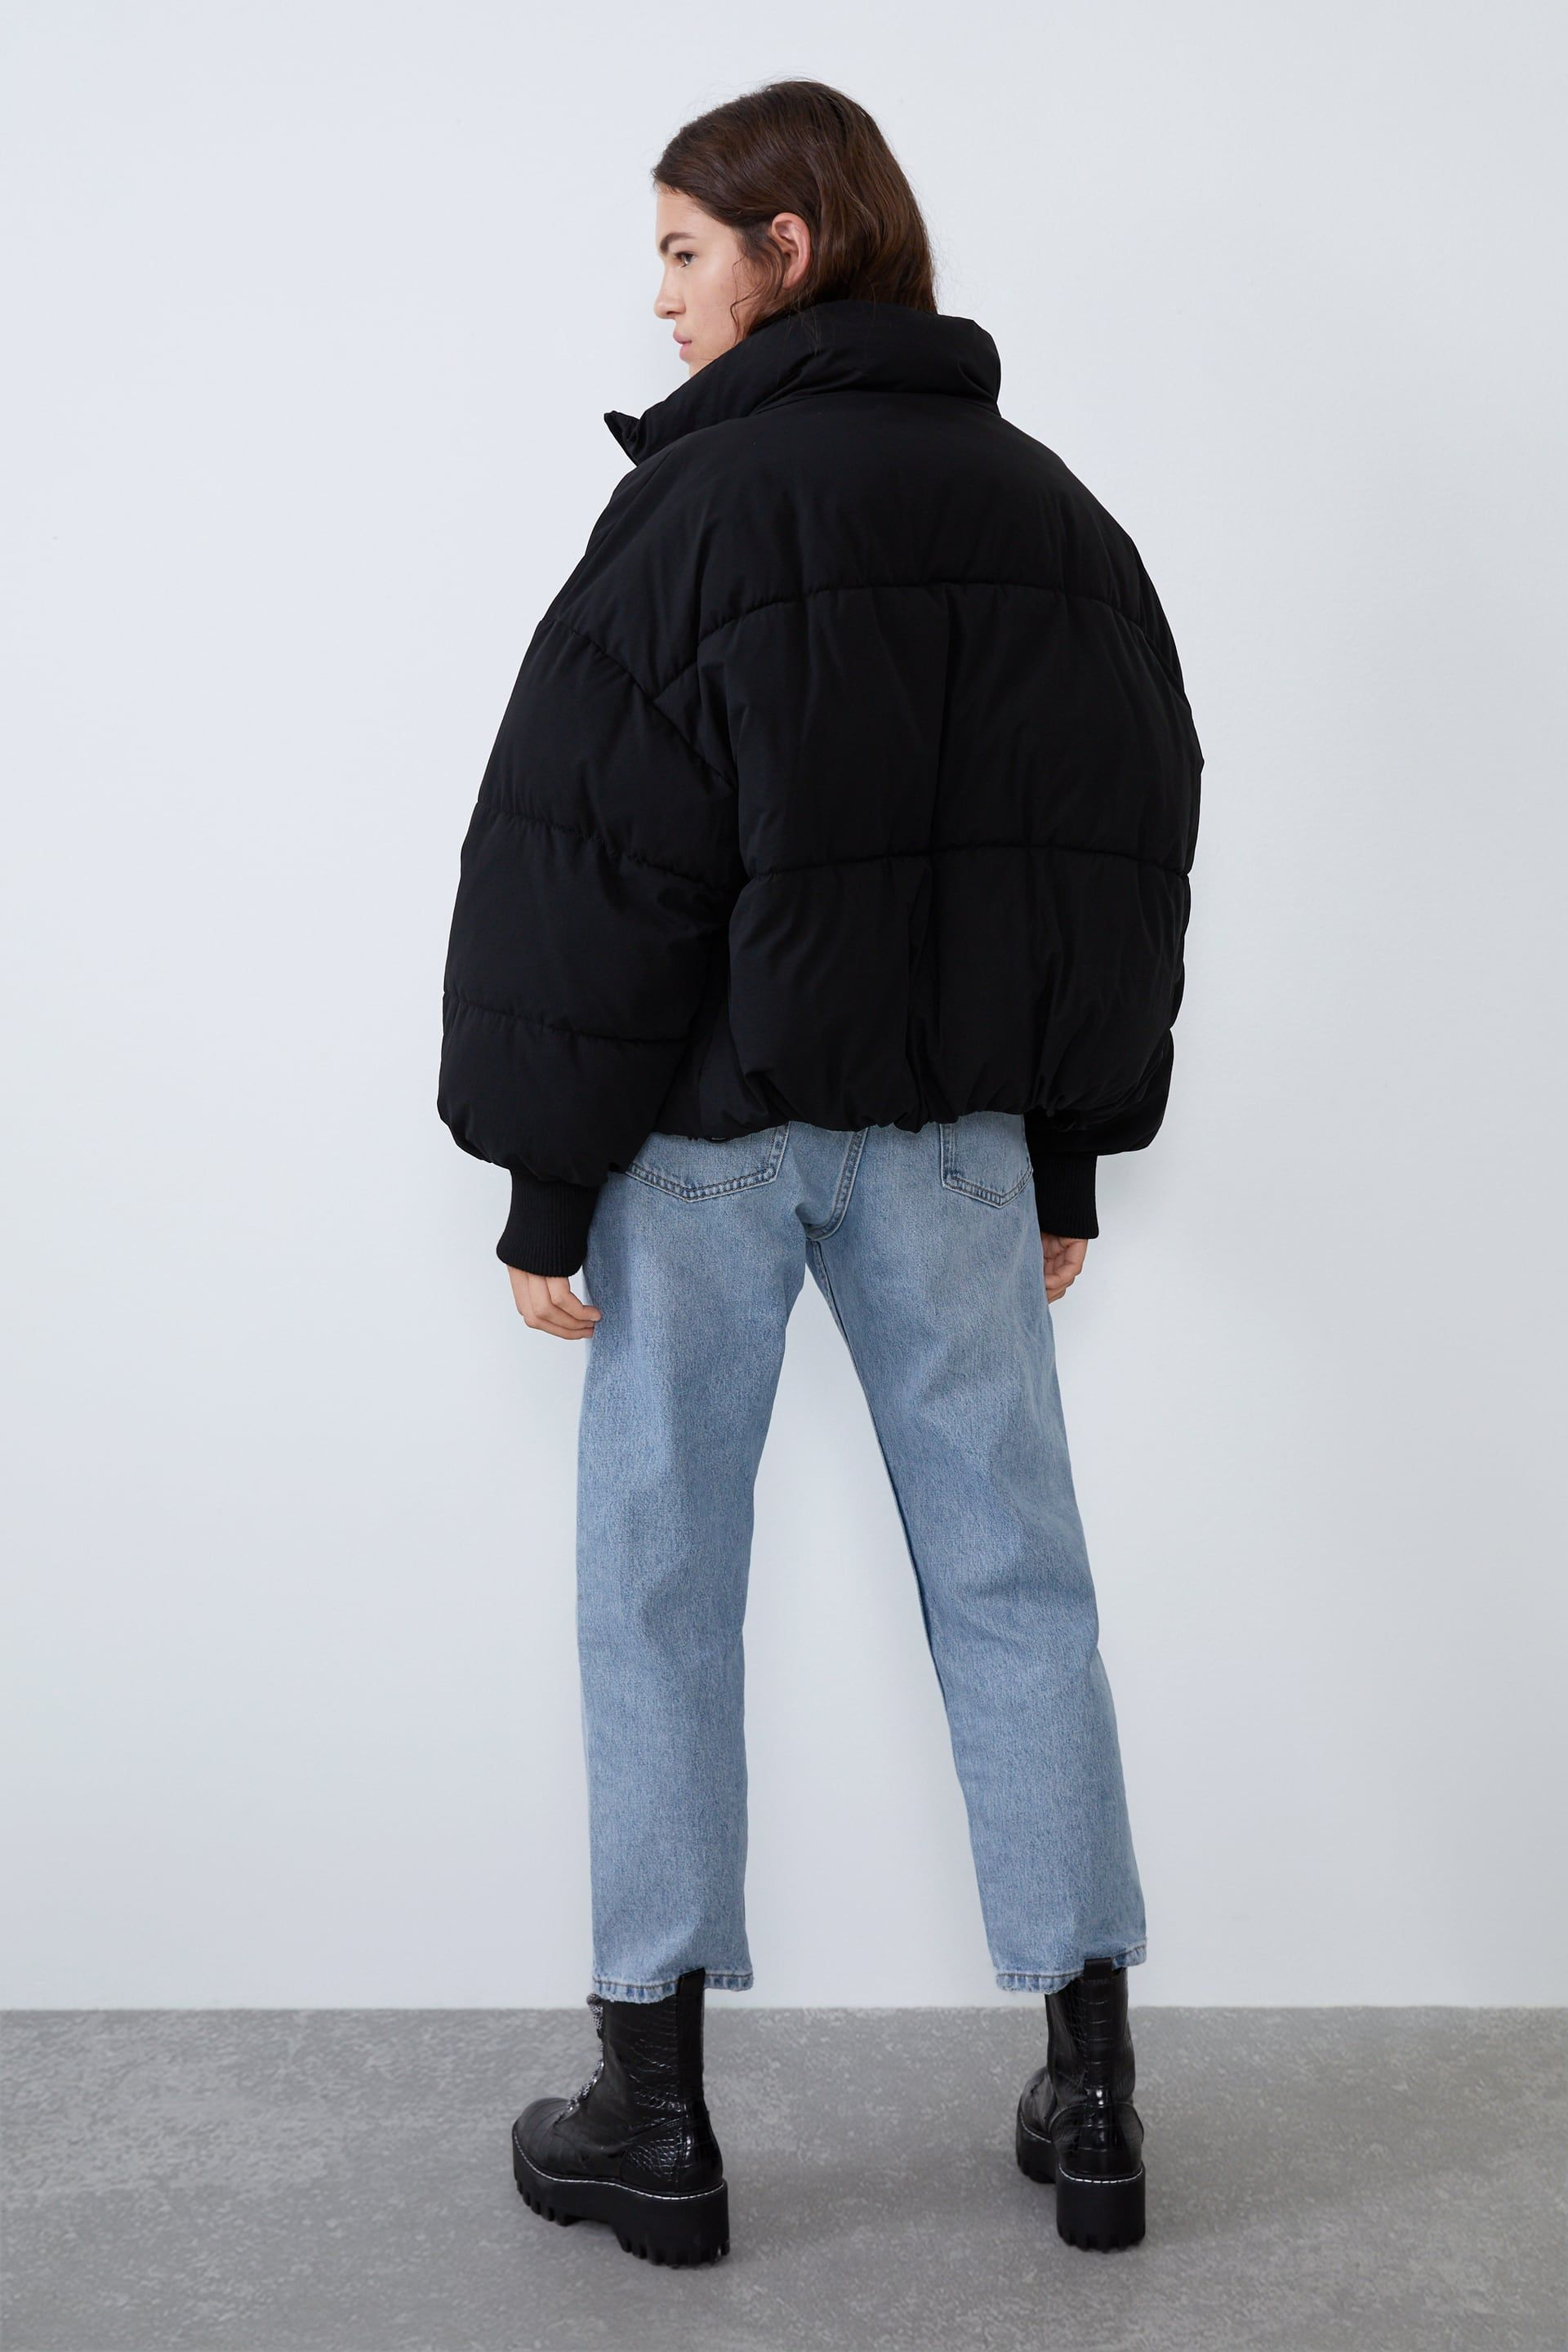 Oversized Puffer Jacket View All Coats Woman Zara United States Puffer Jacket Outfit Puffer Jacket Style Oversized Puffer Jacket [ 2880 x 1920 Pixel ]